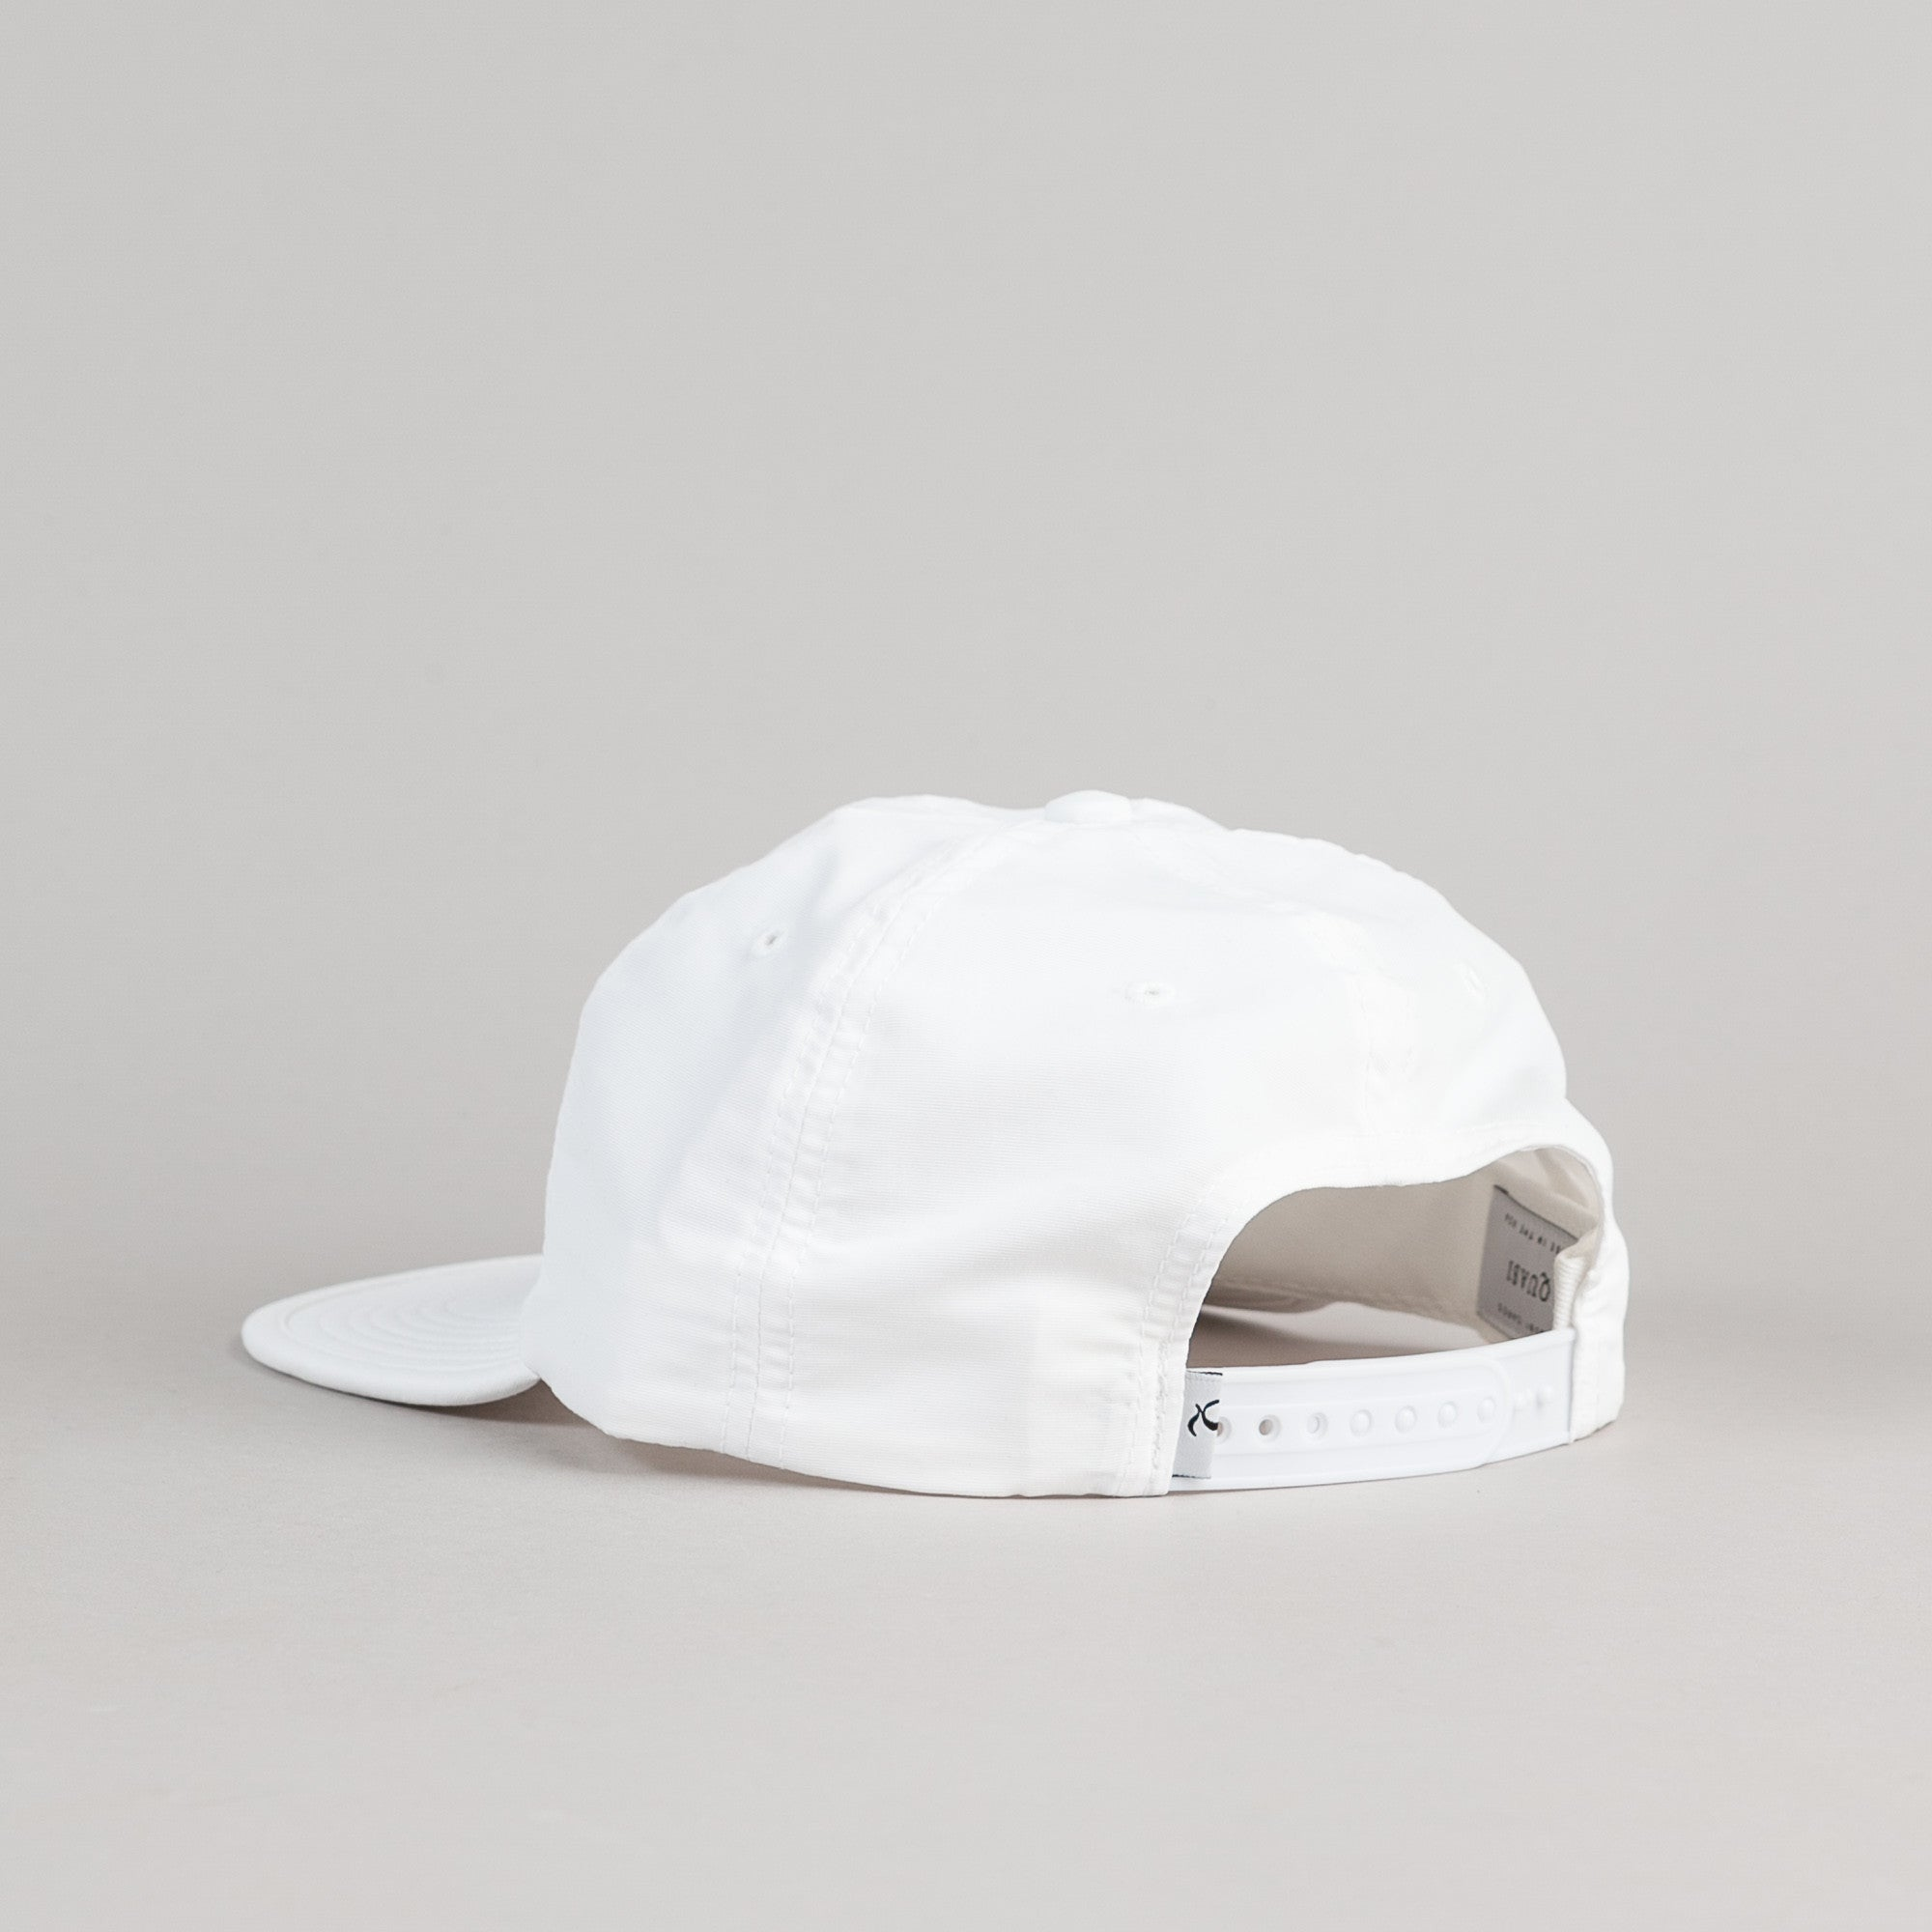 Quasi Skateboards Mayo Cap - White